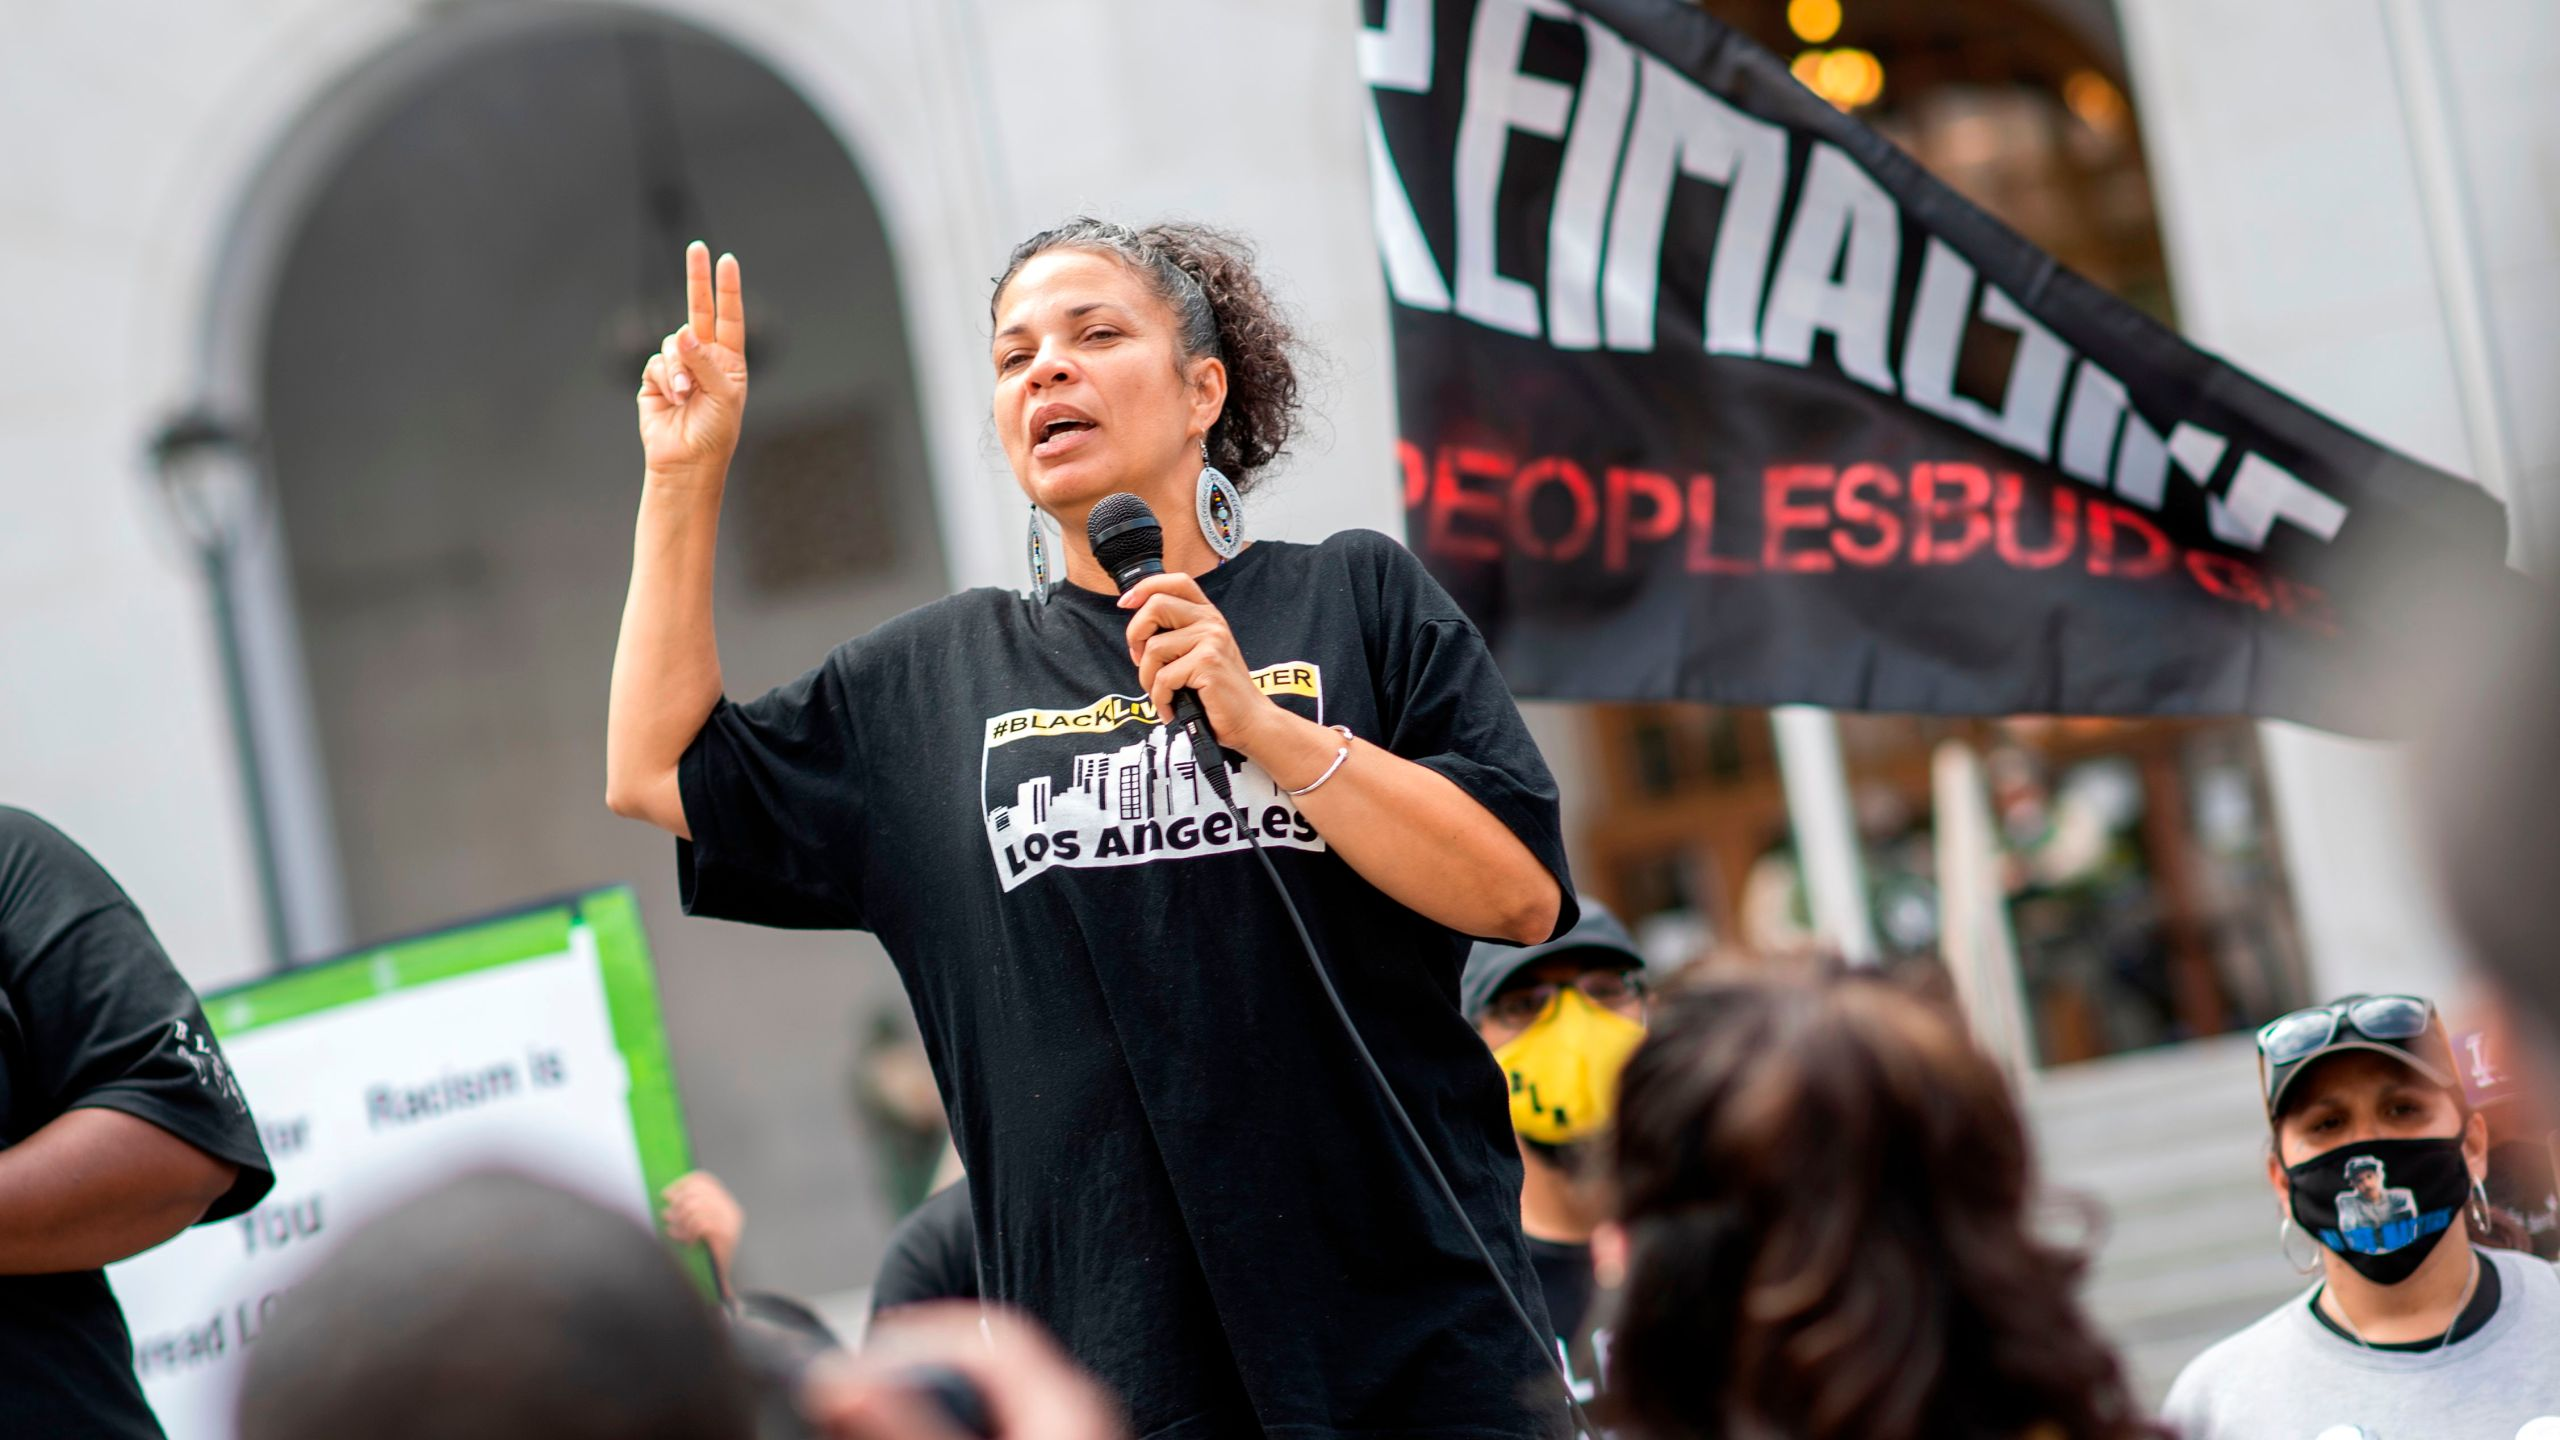 Melina Abdullah from Black Lives Matter addresses the crowd during a demonstration to ask for the removal of District Attorney Jackie Lacey in front of the Hall of Justice, in Los Angeles on June 17, 2020. (Valerie Macon/AFP via Getty Images)